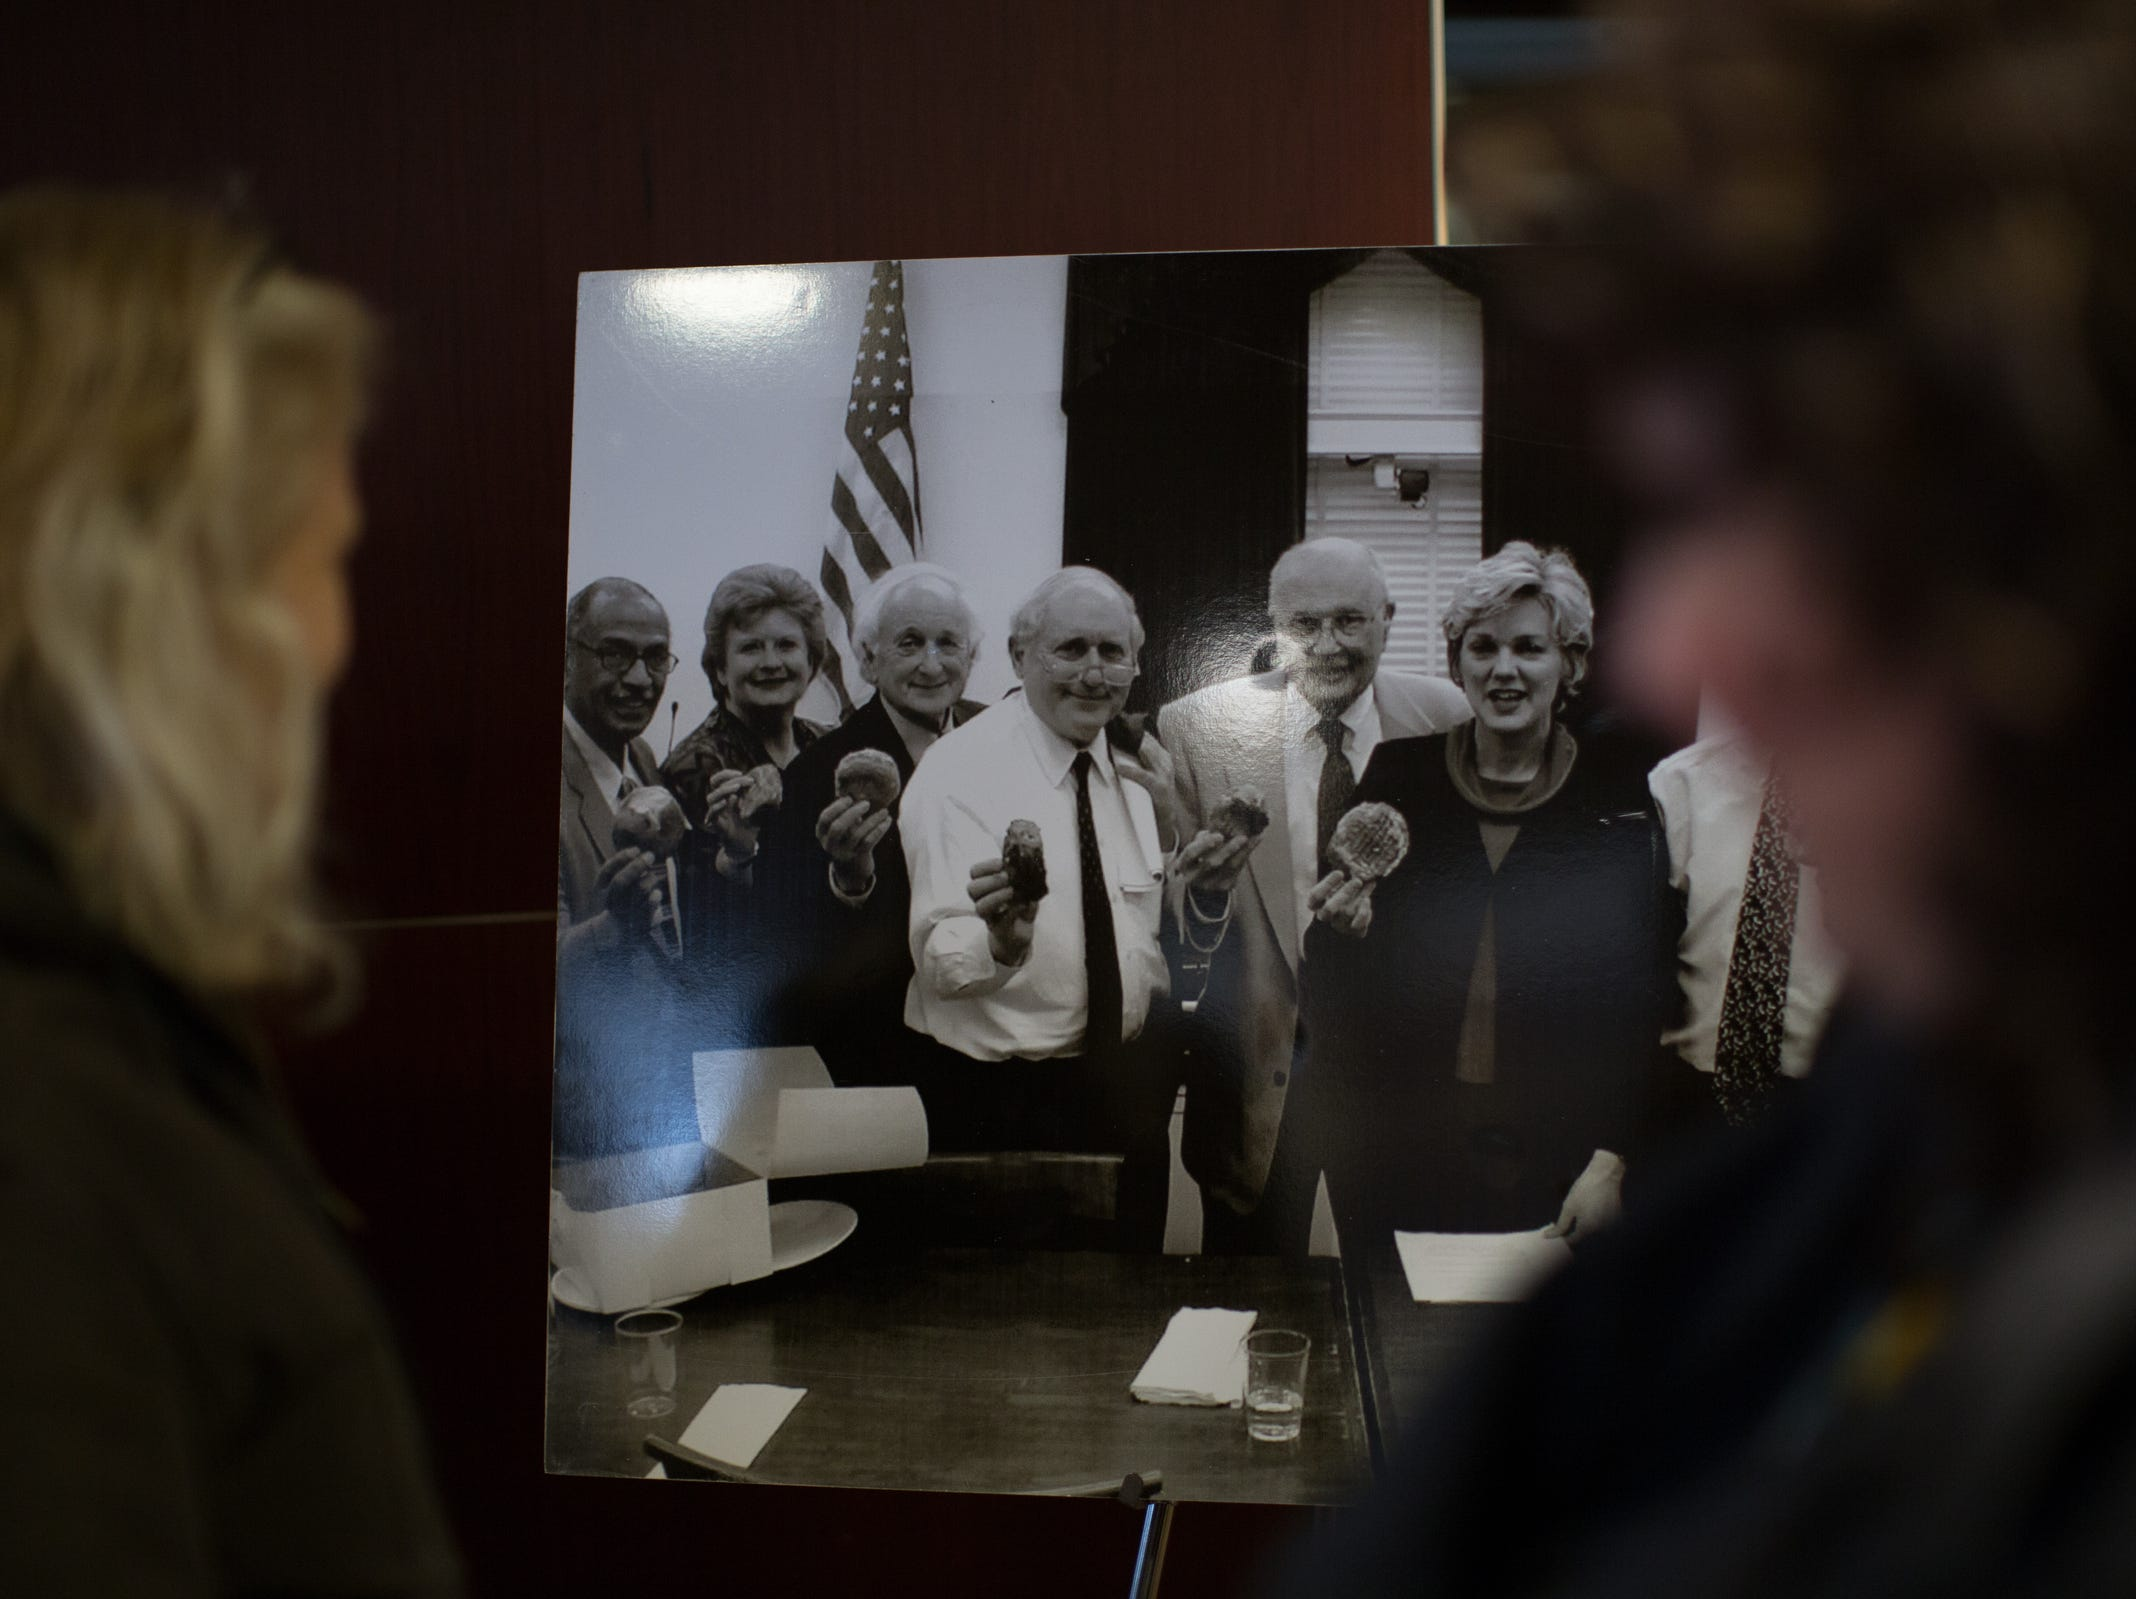 People look over old photos after paying their respects during the visitation for the former U.S. Rep. John D. Dingell at the Ford Community and Performing Arts Center in Dearborn on Monday, February 11, 2019.